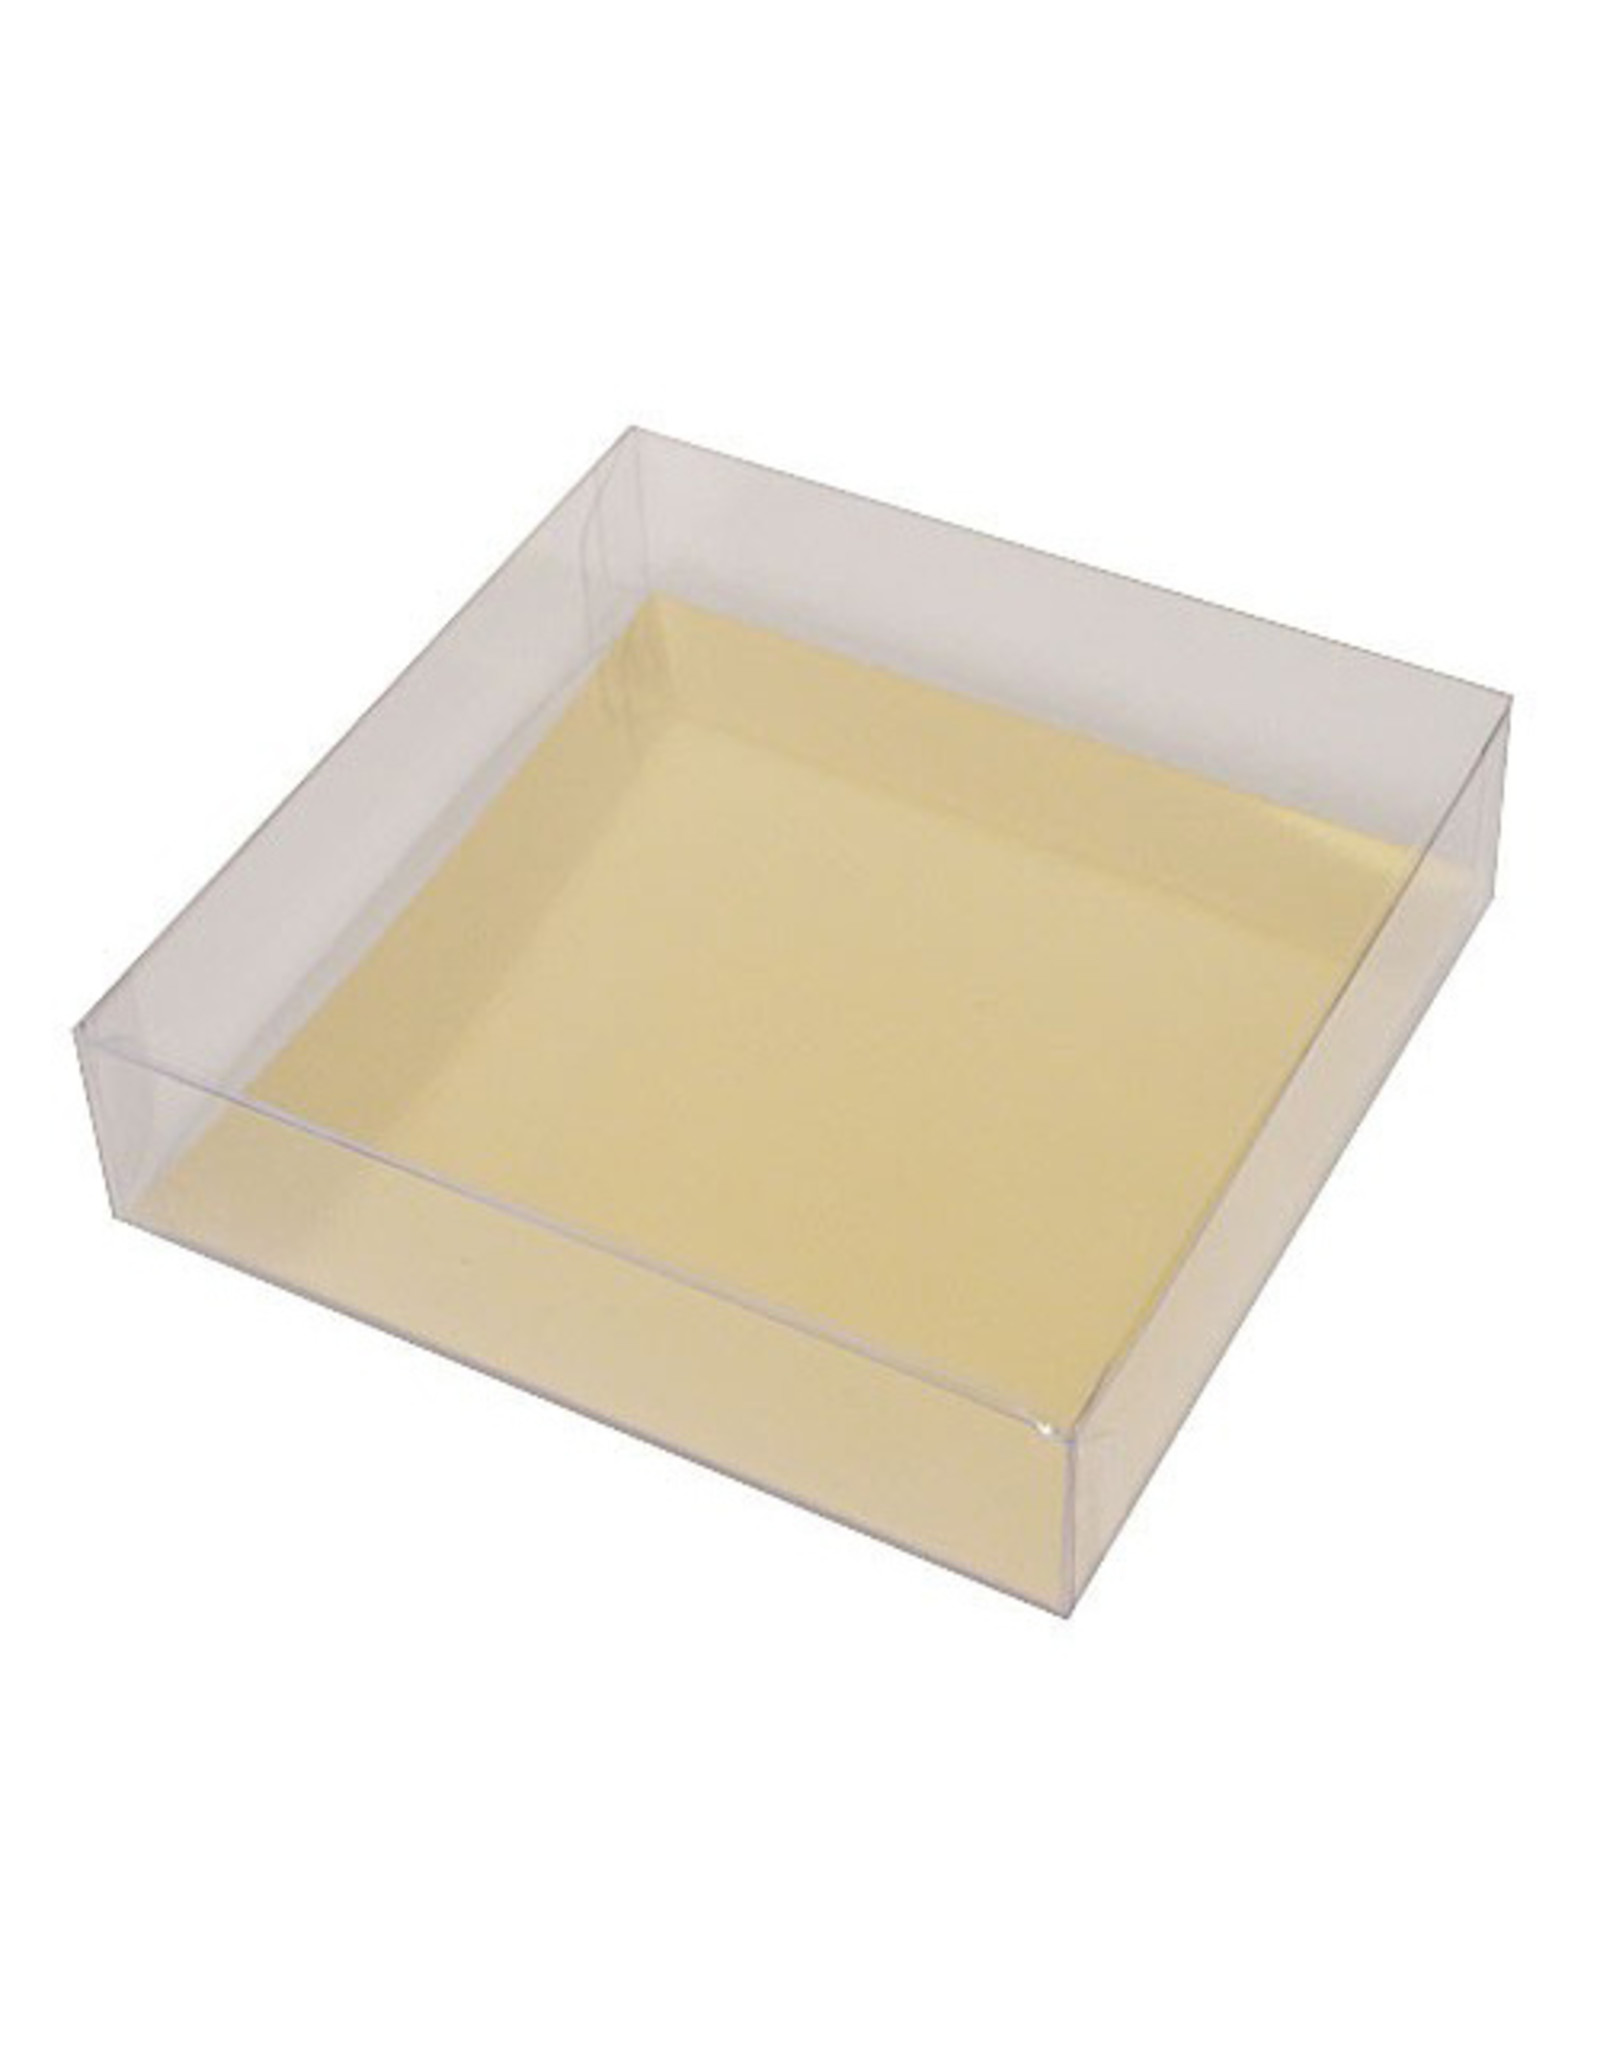 Clearletterbox boxes (per 100 pieces)